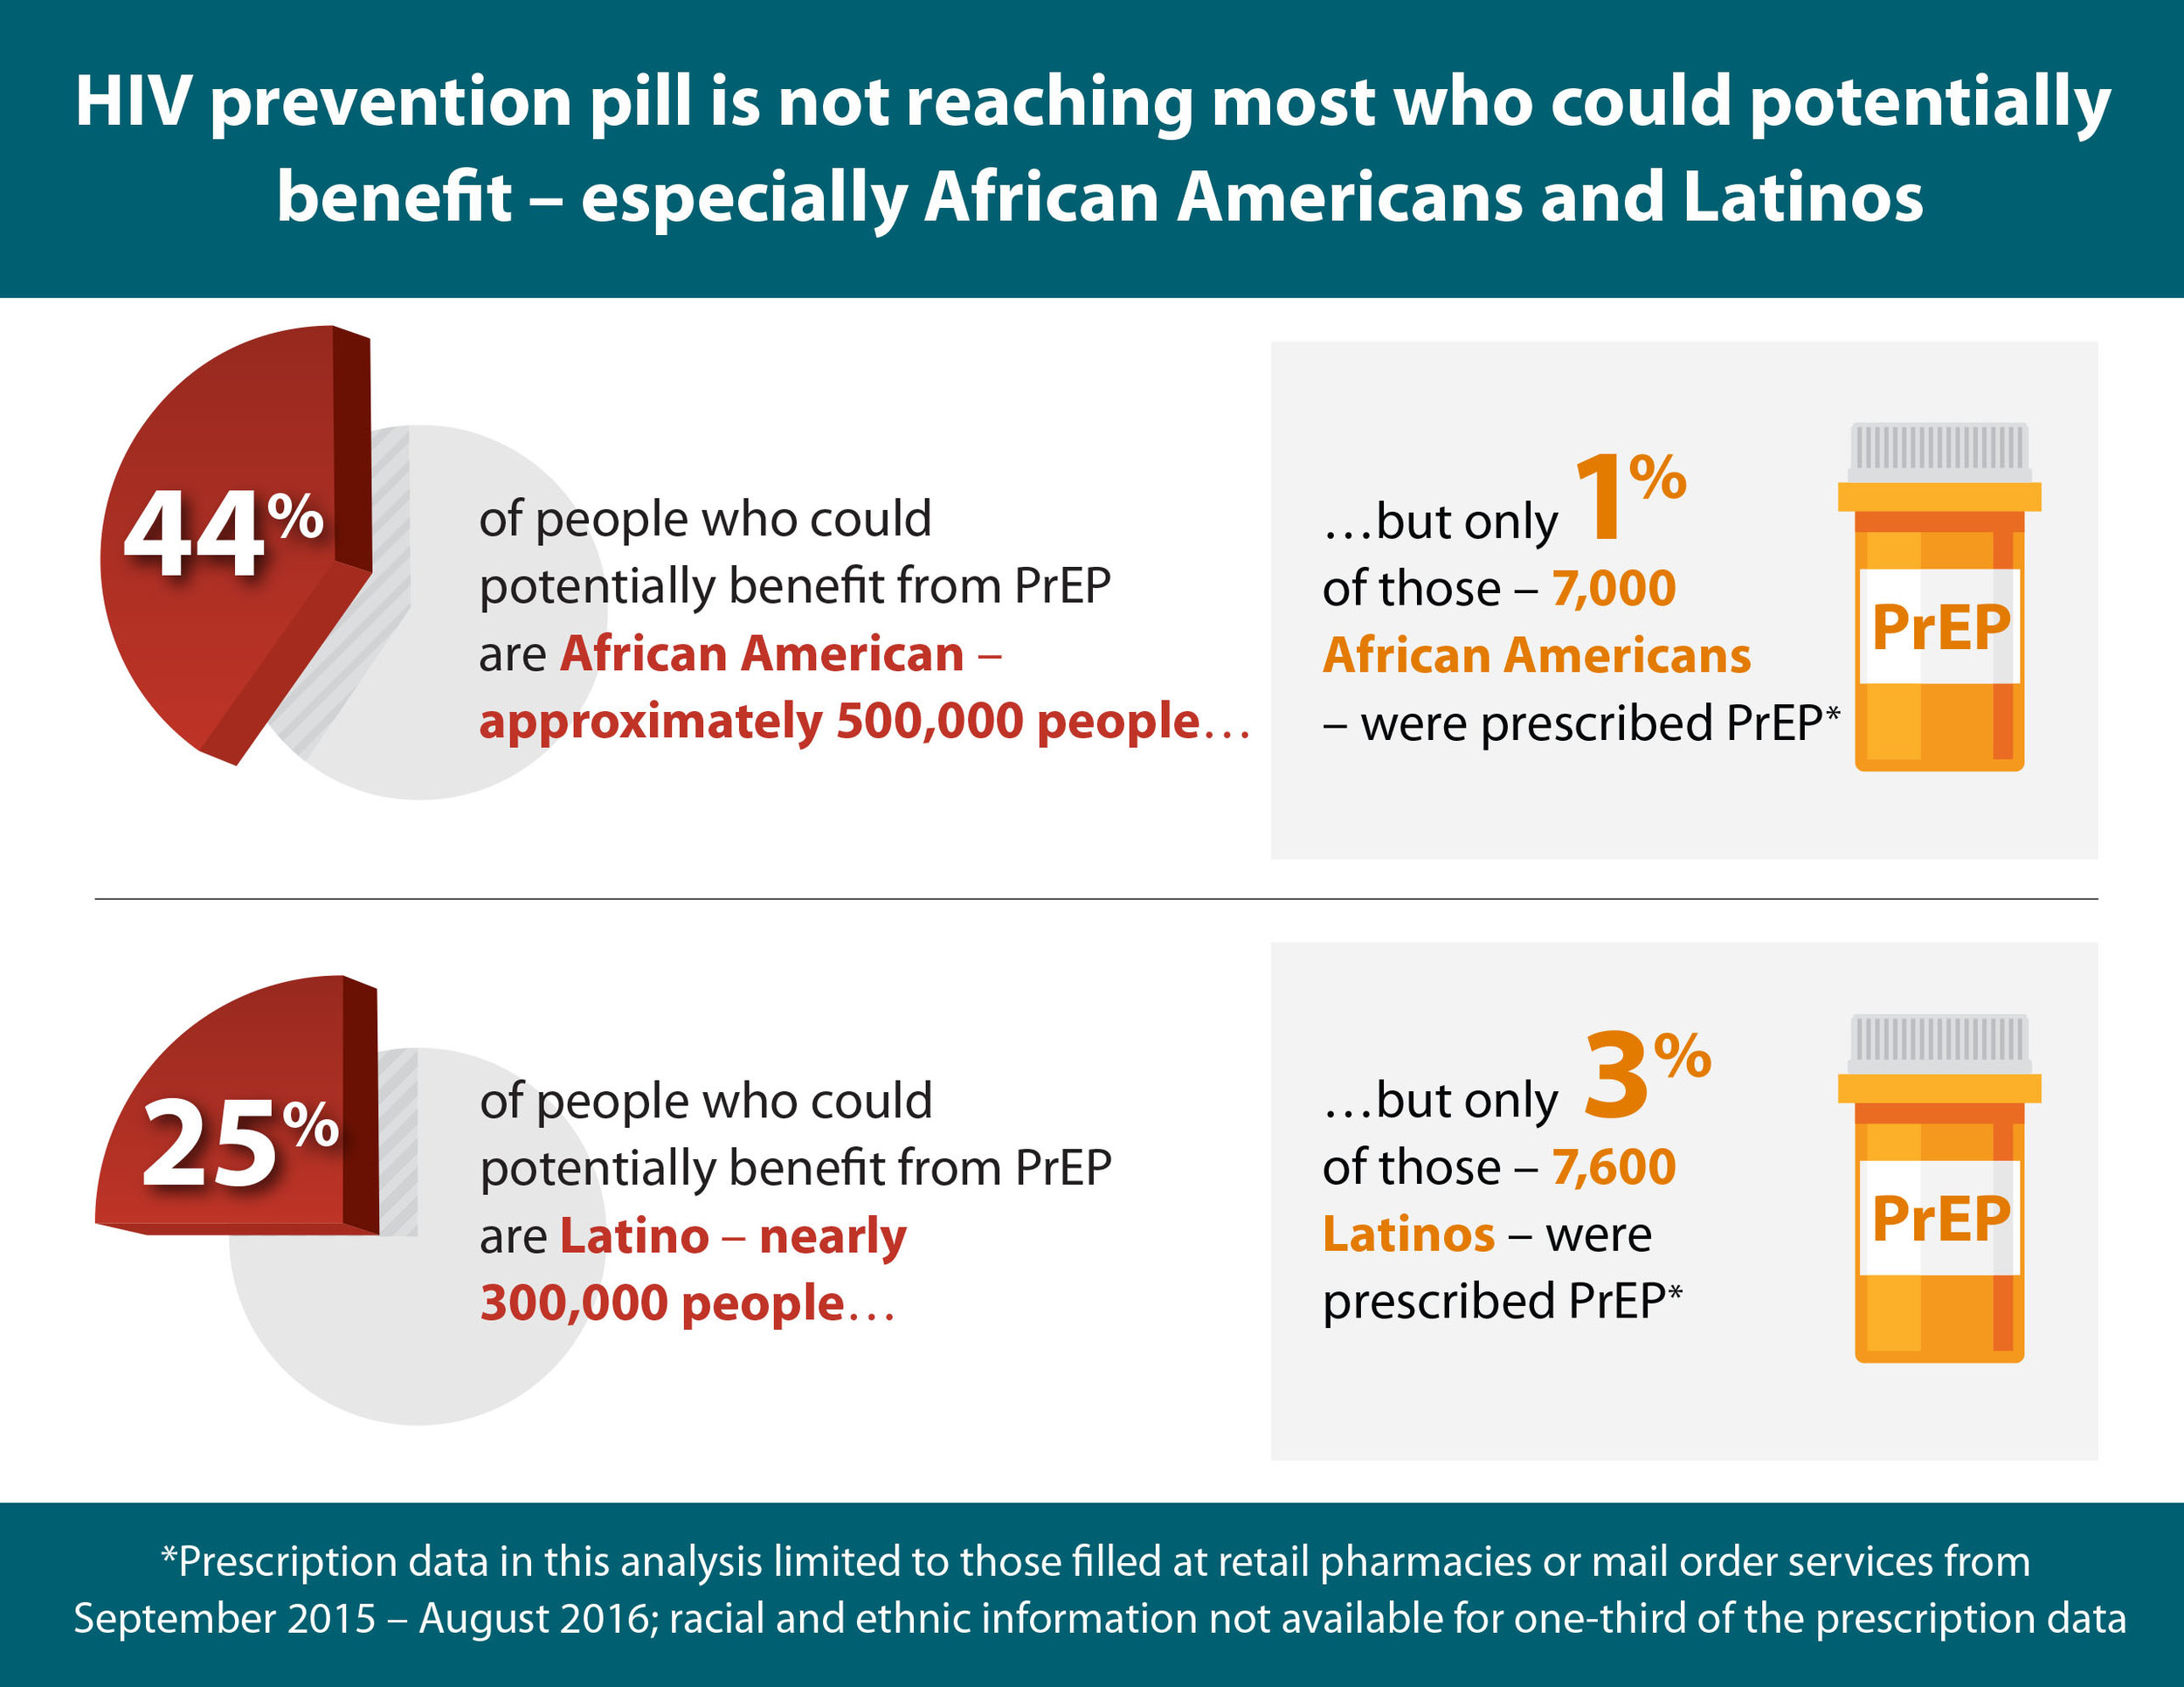 In 2015, there were approximately 1.1 million Americans who could potentially benefit from PrEP: 500,000 African Americans, 300,000 Latinos, and 300,000 whites. However, analysis of available data on PrEP prescriptions finds that 7,000 prescriptions were filled at retail pharmacies or mail order services for African-Americans and only 7,600 for Latinos during a similar time period (September 2015- August 2016).